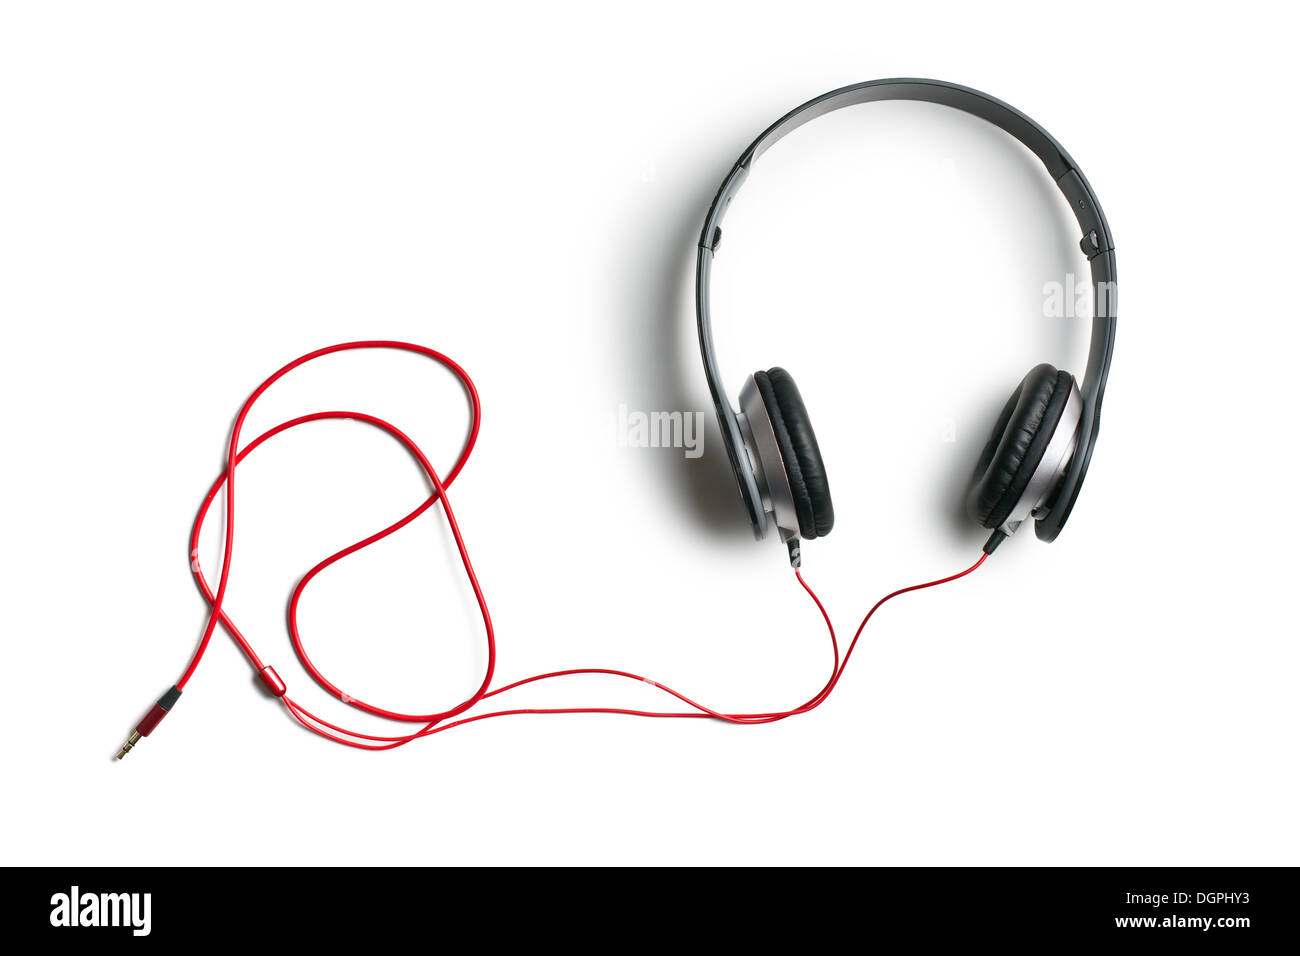 top view of headphones on white background - Stock Image